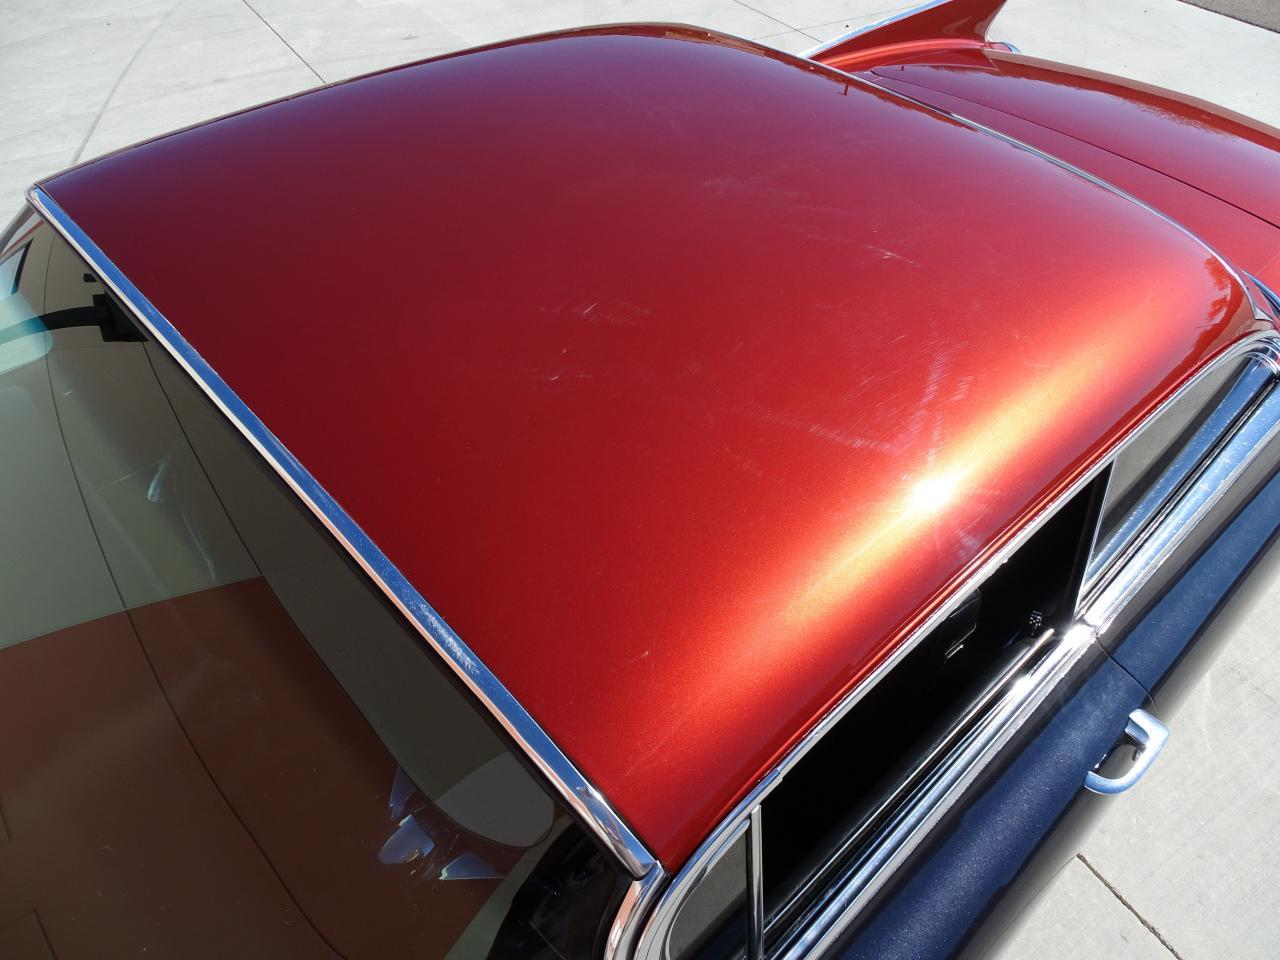 Large Picture of Classic 1960 Cadillac Series 62 located in Deer Valley Arizona - $51,000.00 Offered by Gateway Classic Cars - Scottsdale - MZFH